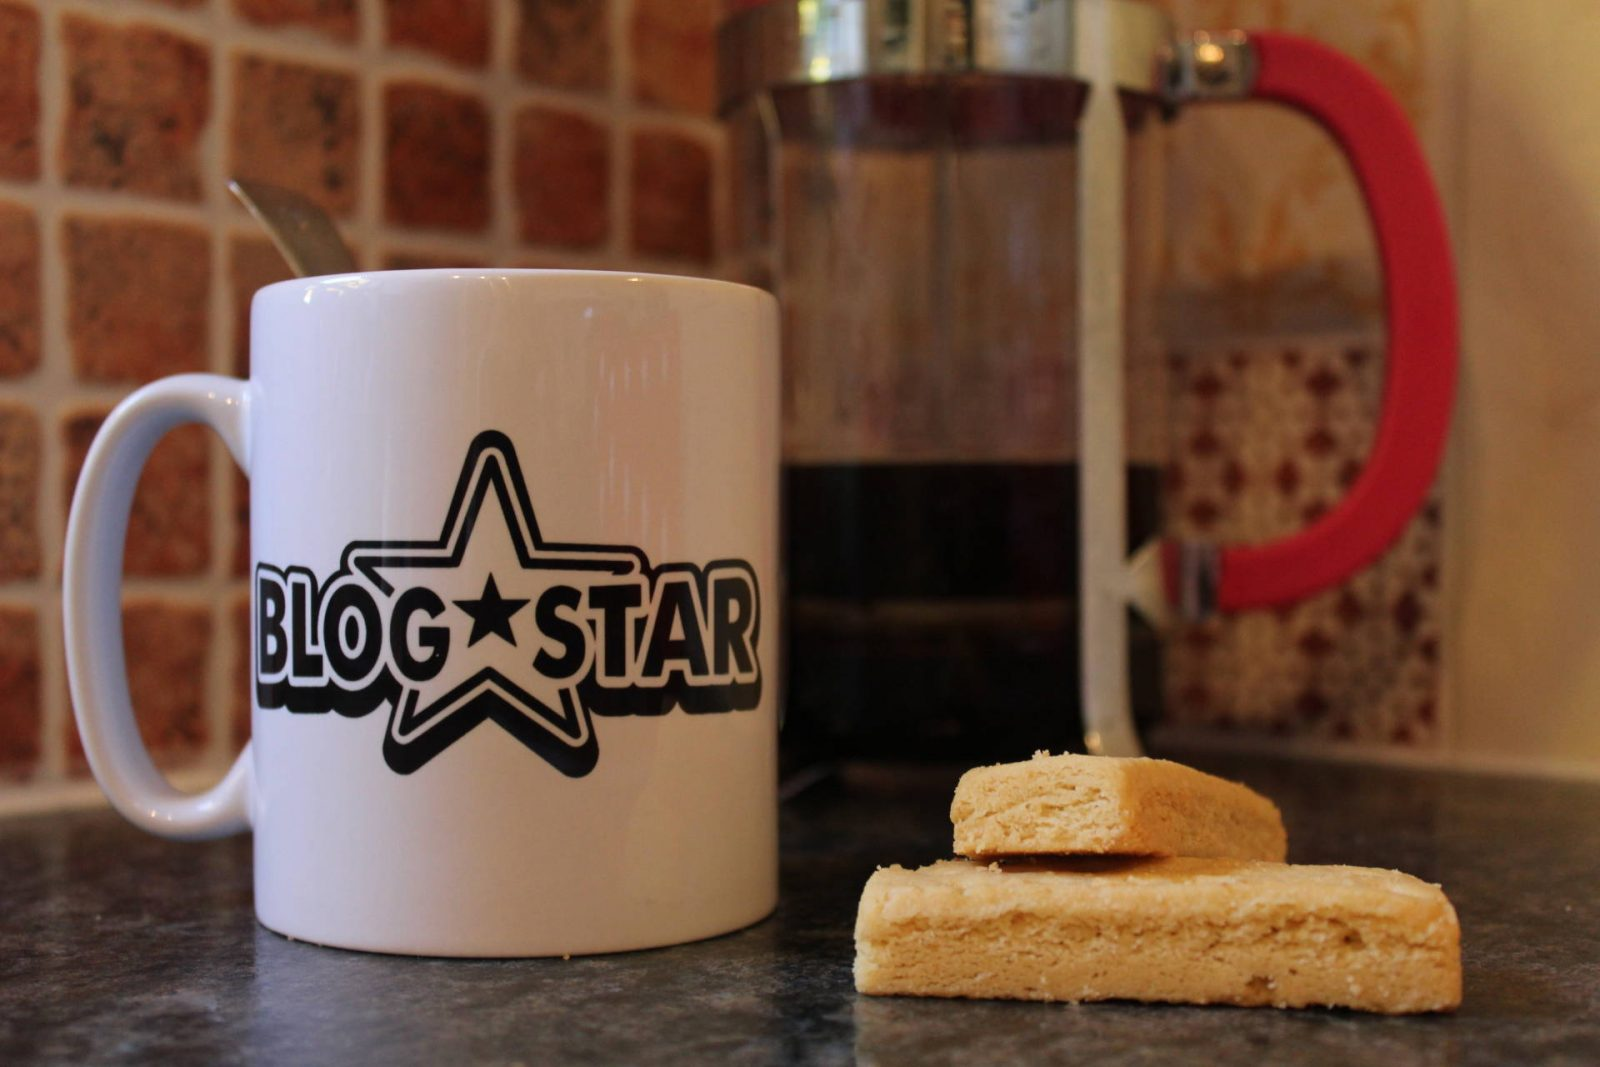 blog star mugs business blogging